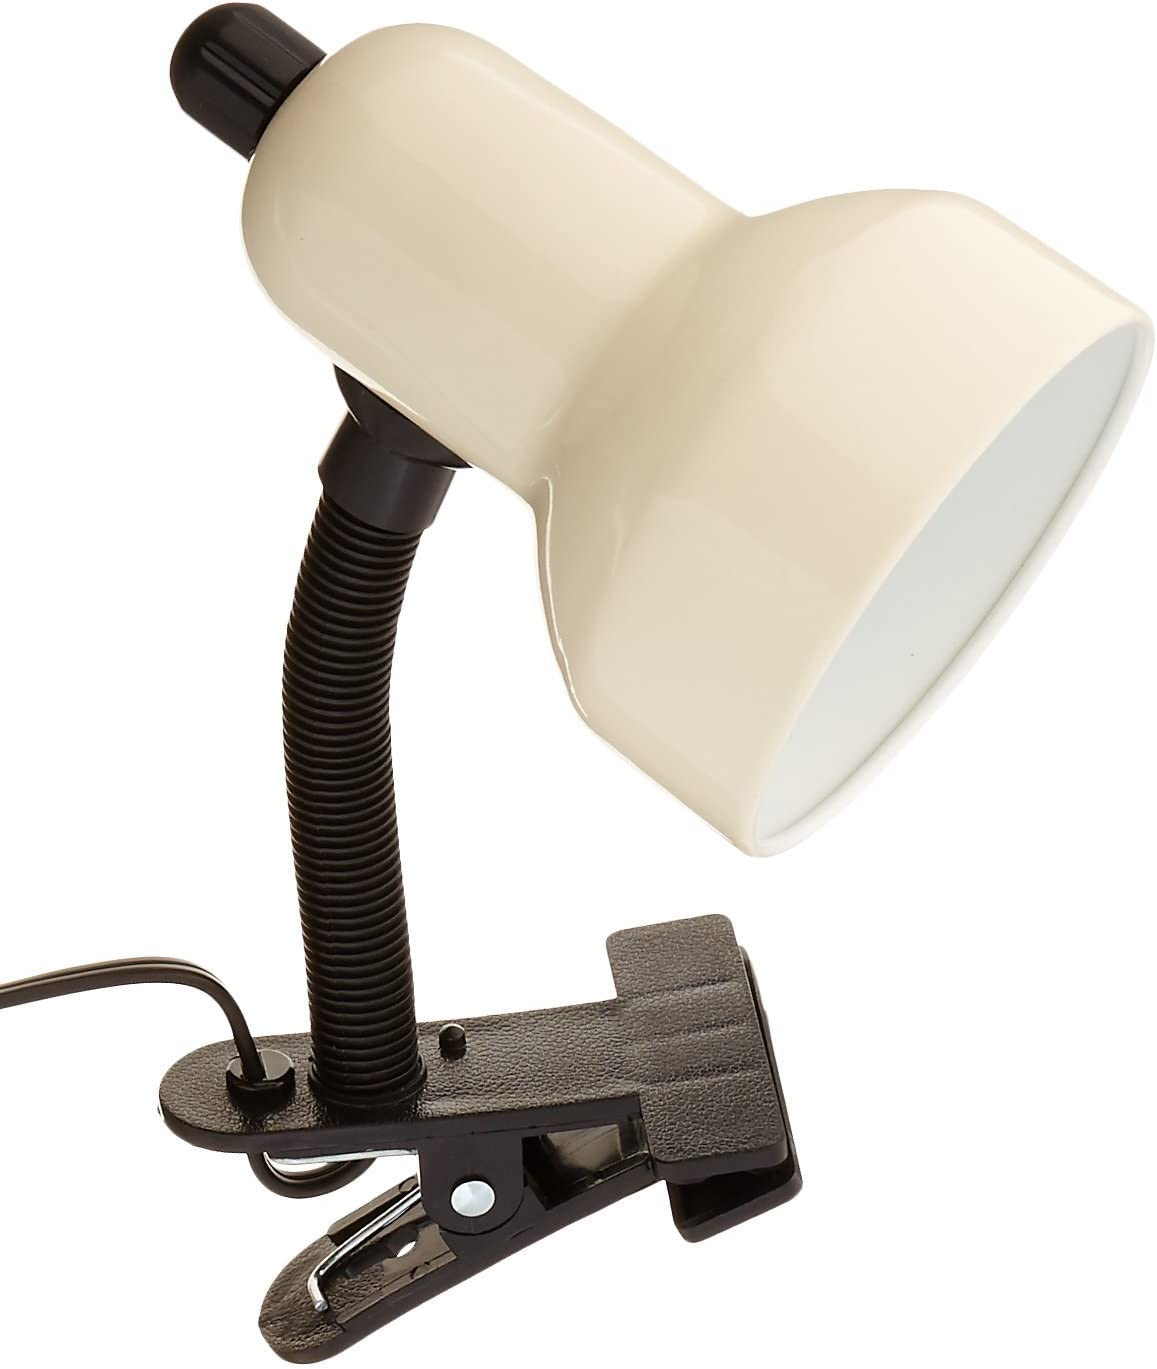 Lite Source LS-111IVY Clip-On Lamp, Ivy